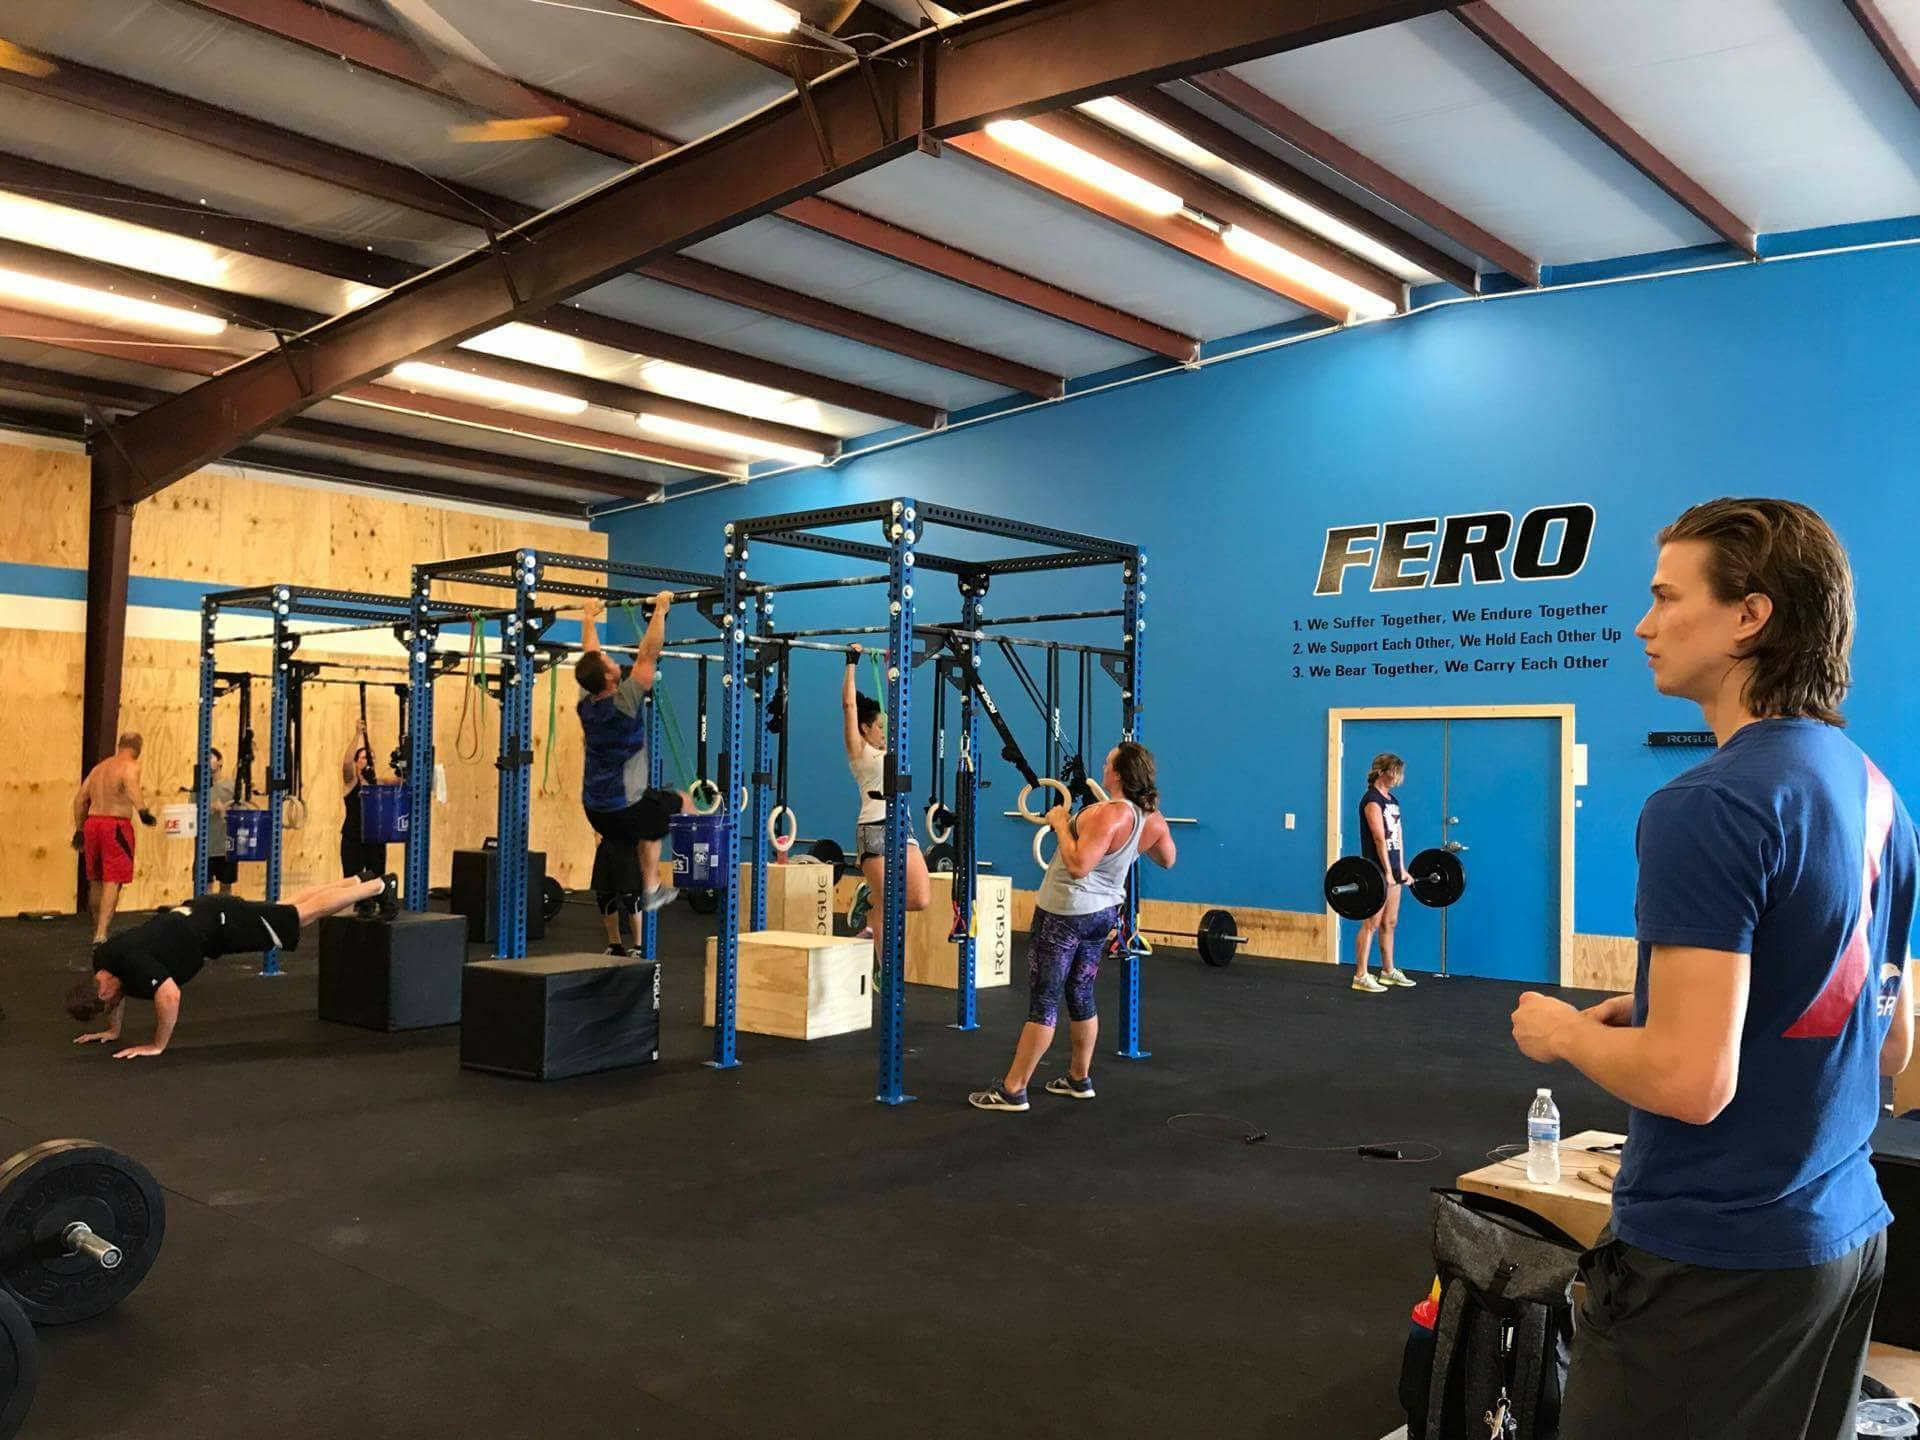 Custom movements to fit your needs - Think you can't do Fero Fit because of lack of mobility or past injuries. No problem. We alter the movements to what you can do to get maximum results